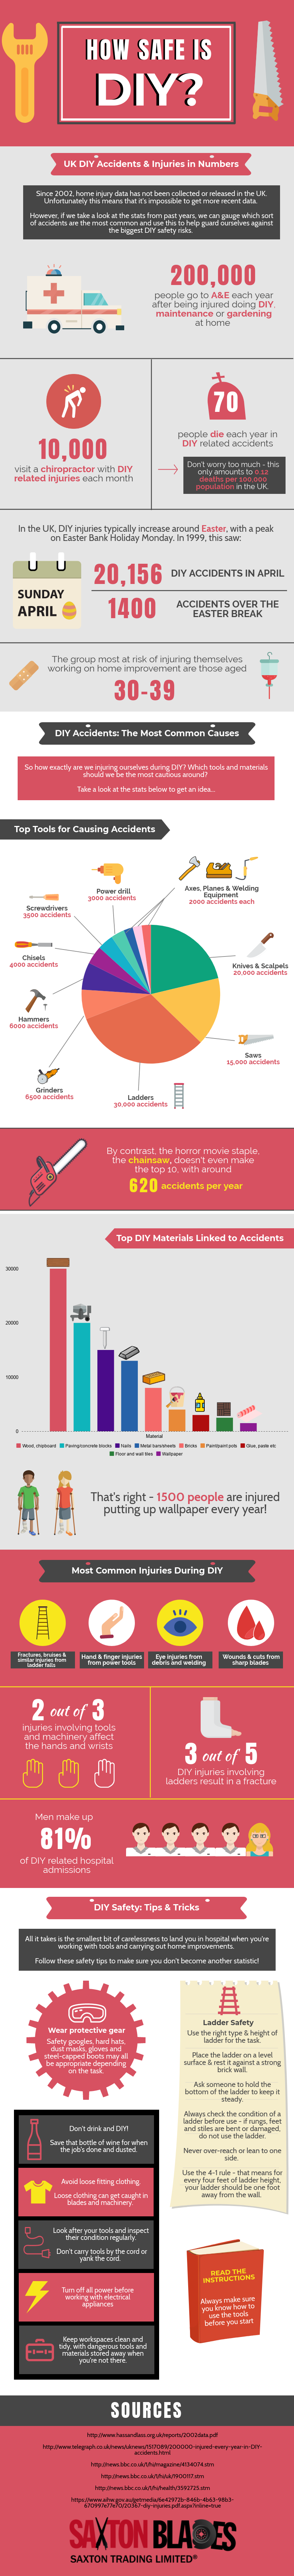 infographic on how safe is DIY